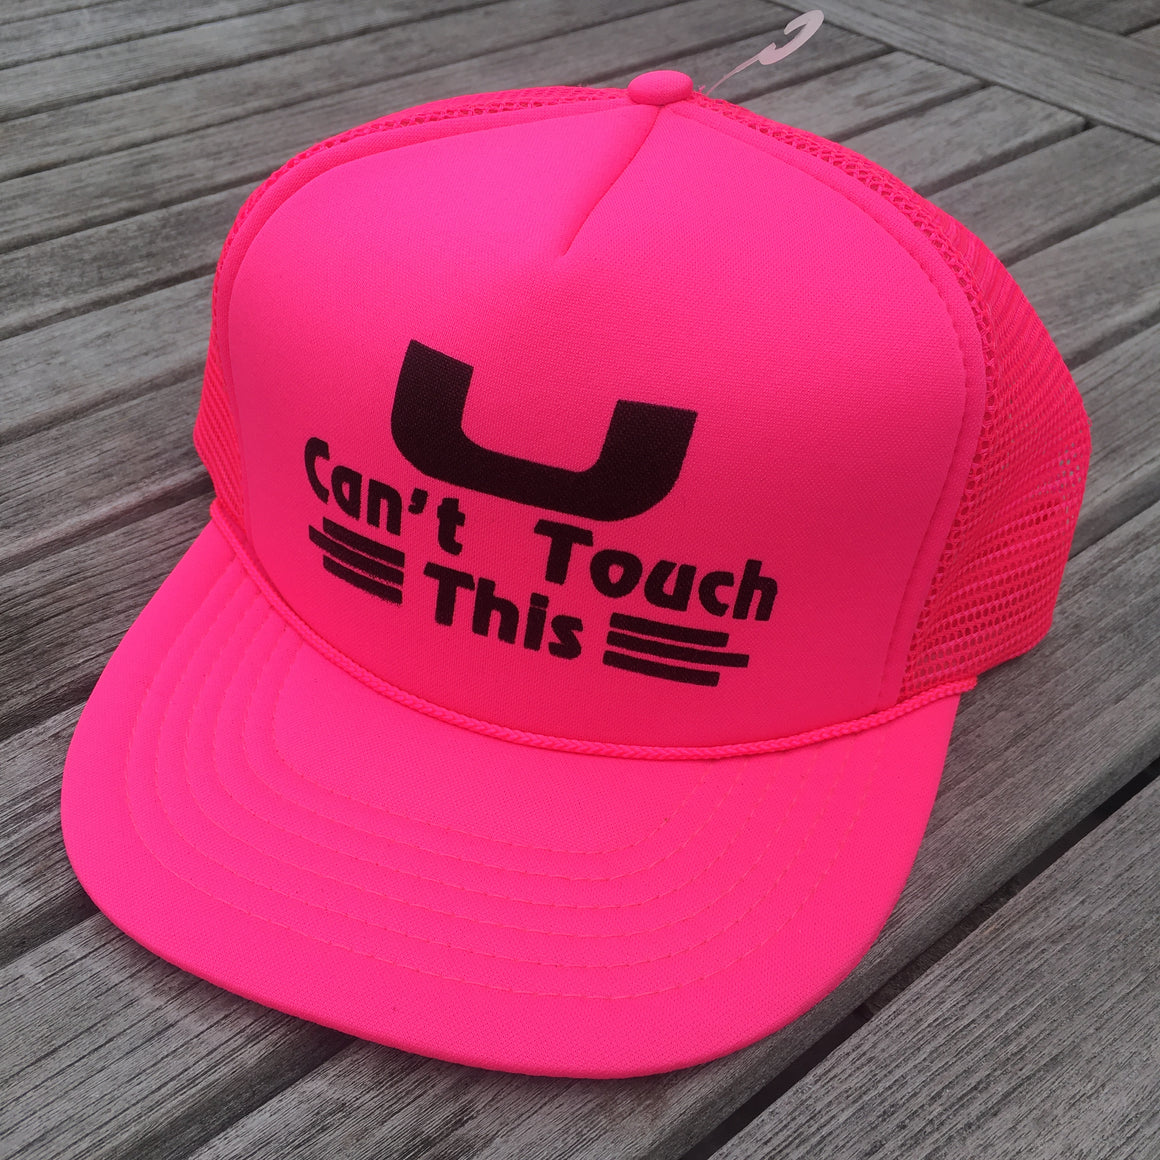 U Can't Touch This hat